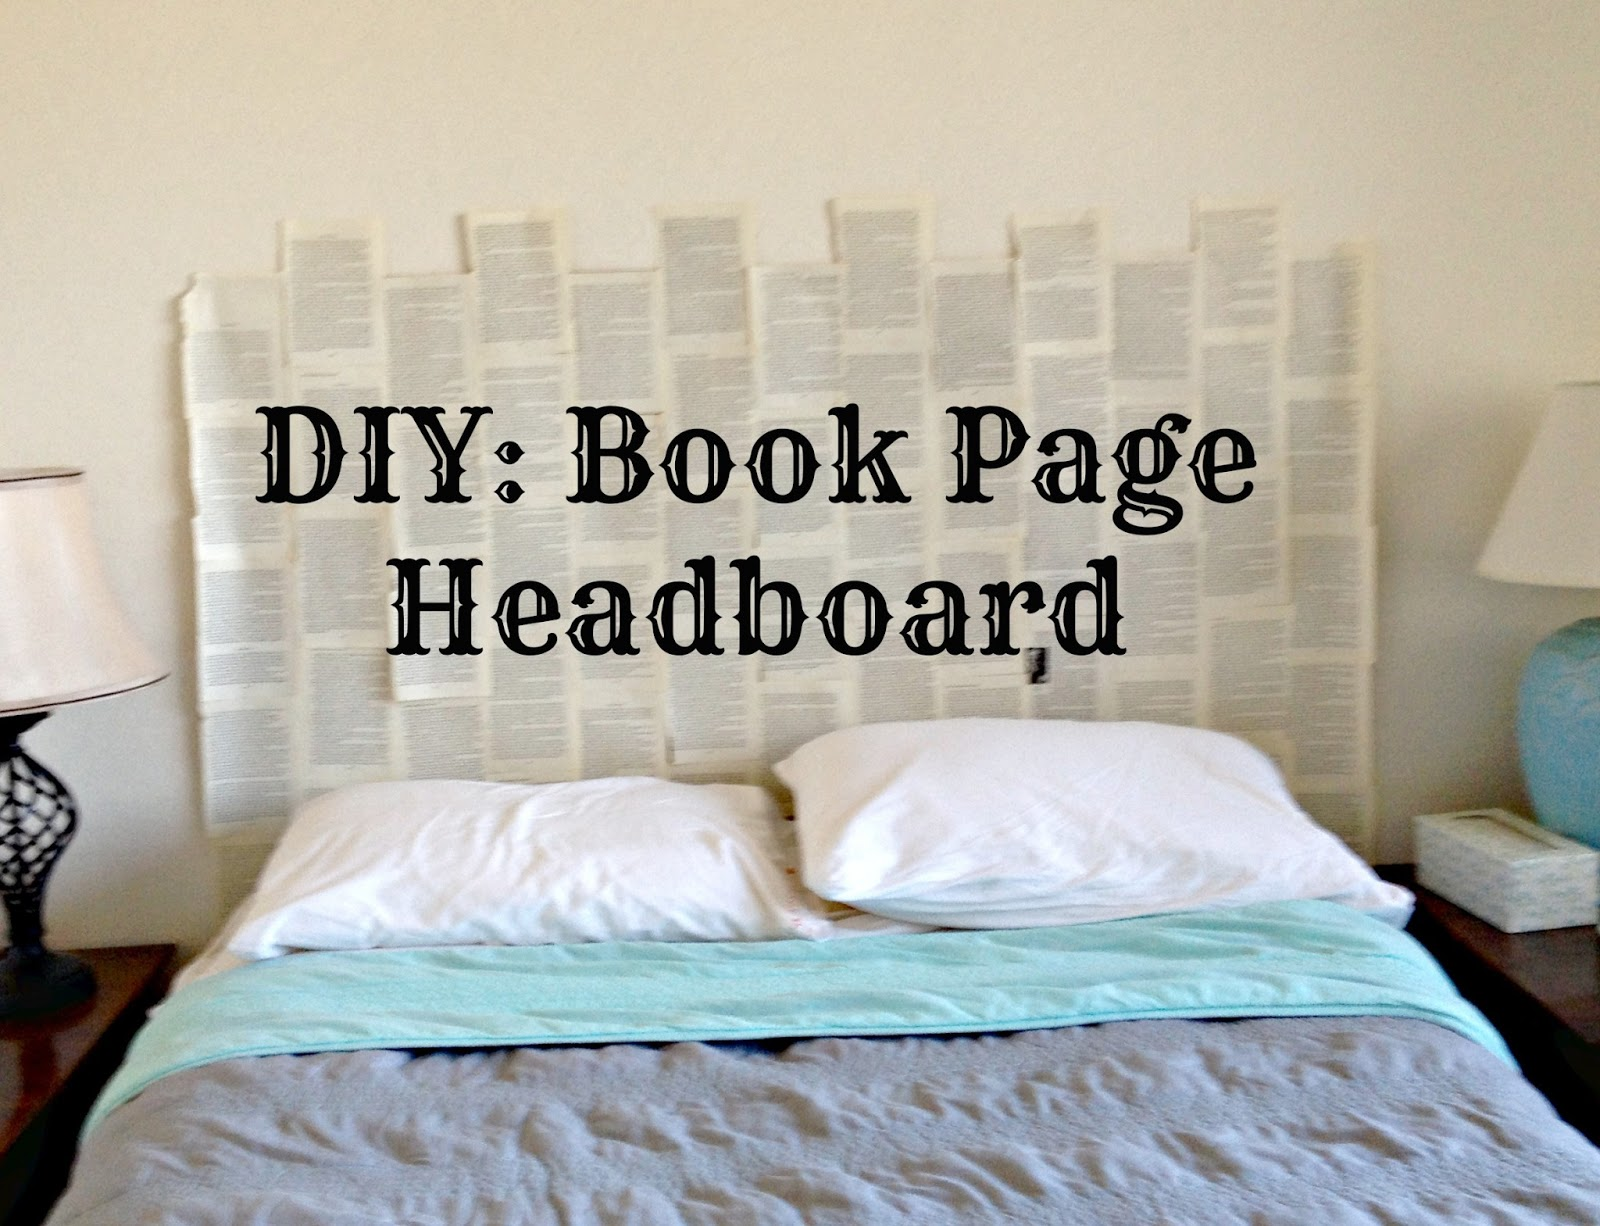 DIY: Book Page Headboard